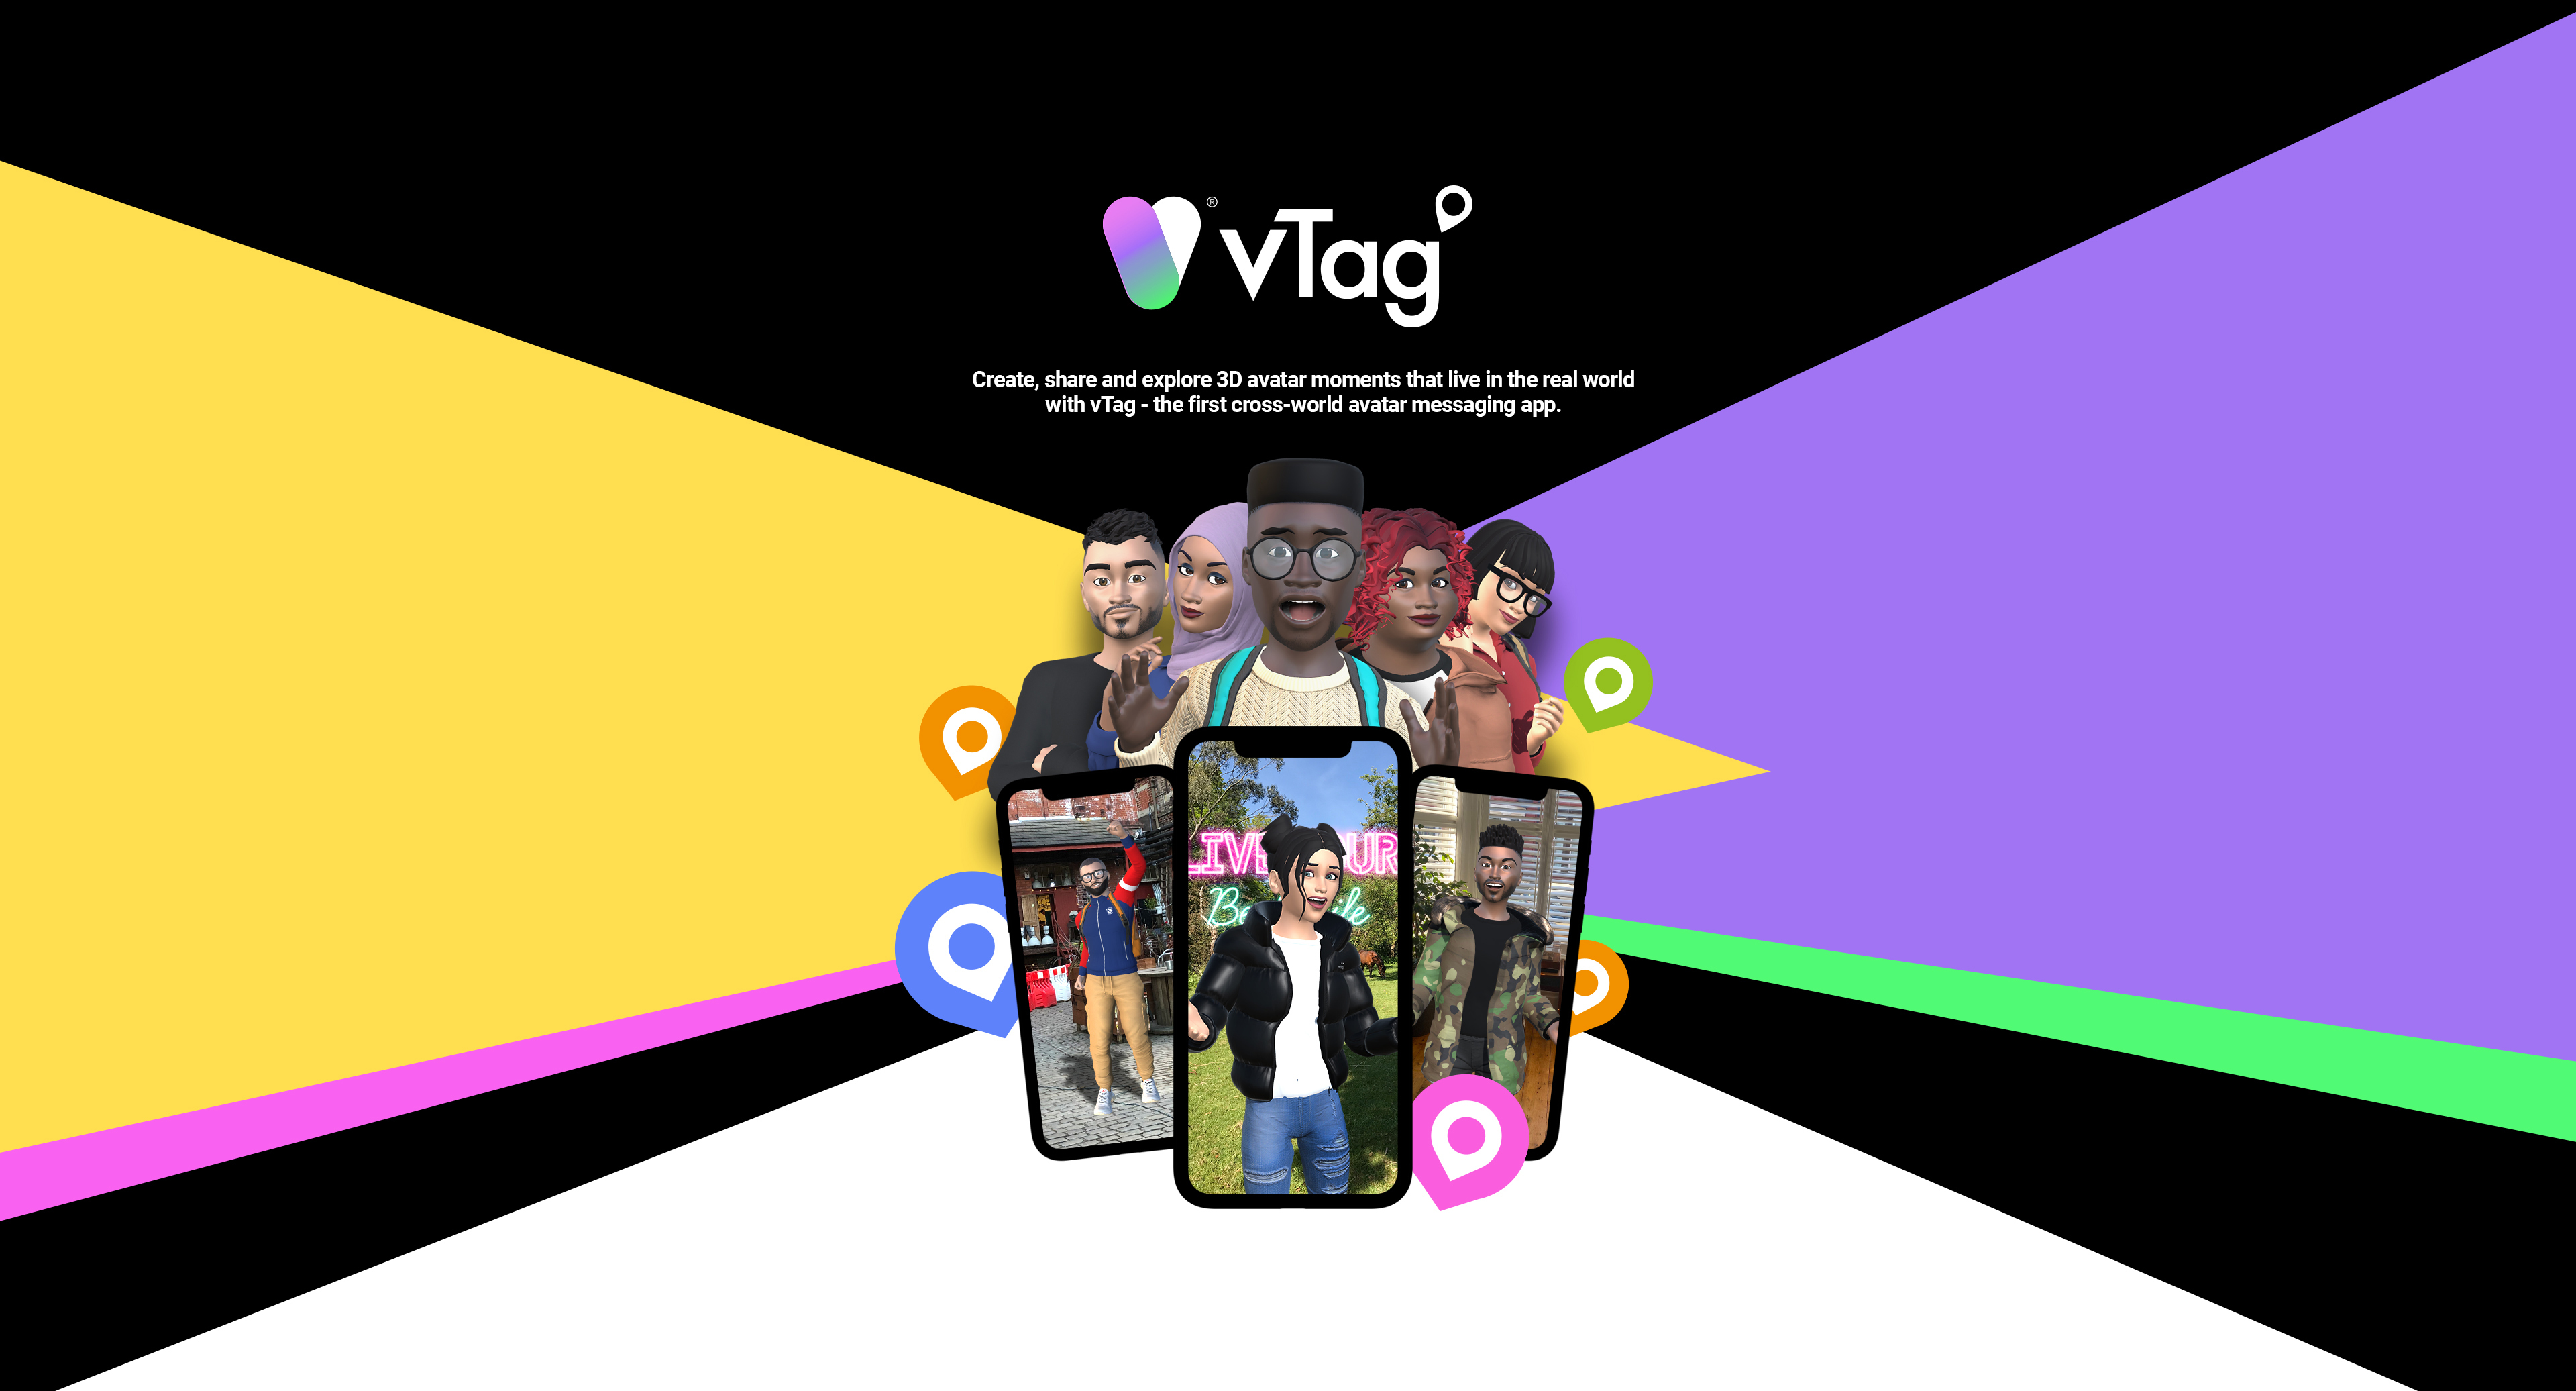 vTag product image